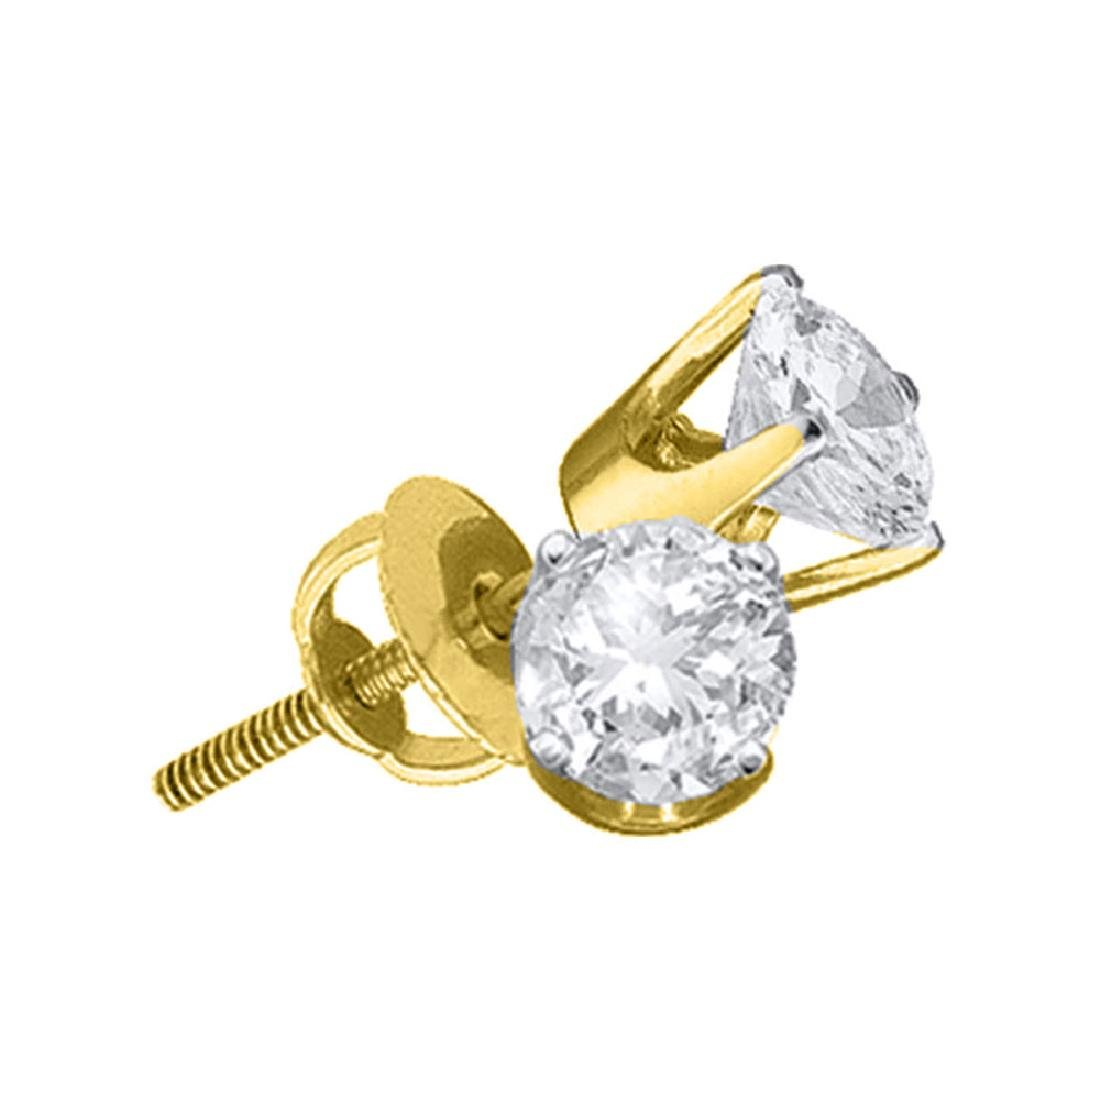 0.65 CTW Diamond Solitaire Earrings 14KT Yellow Gold -